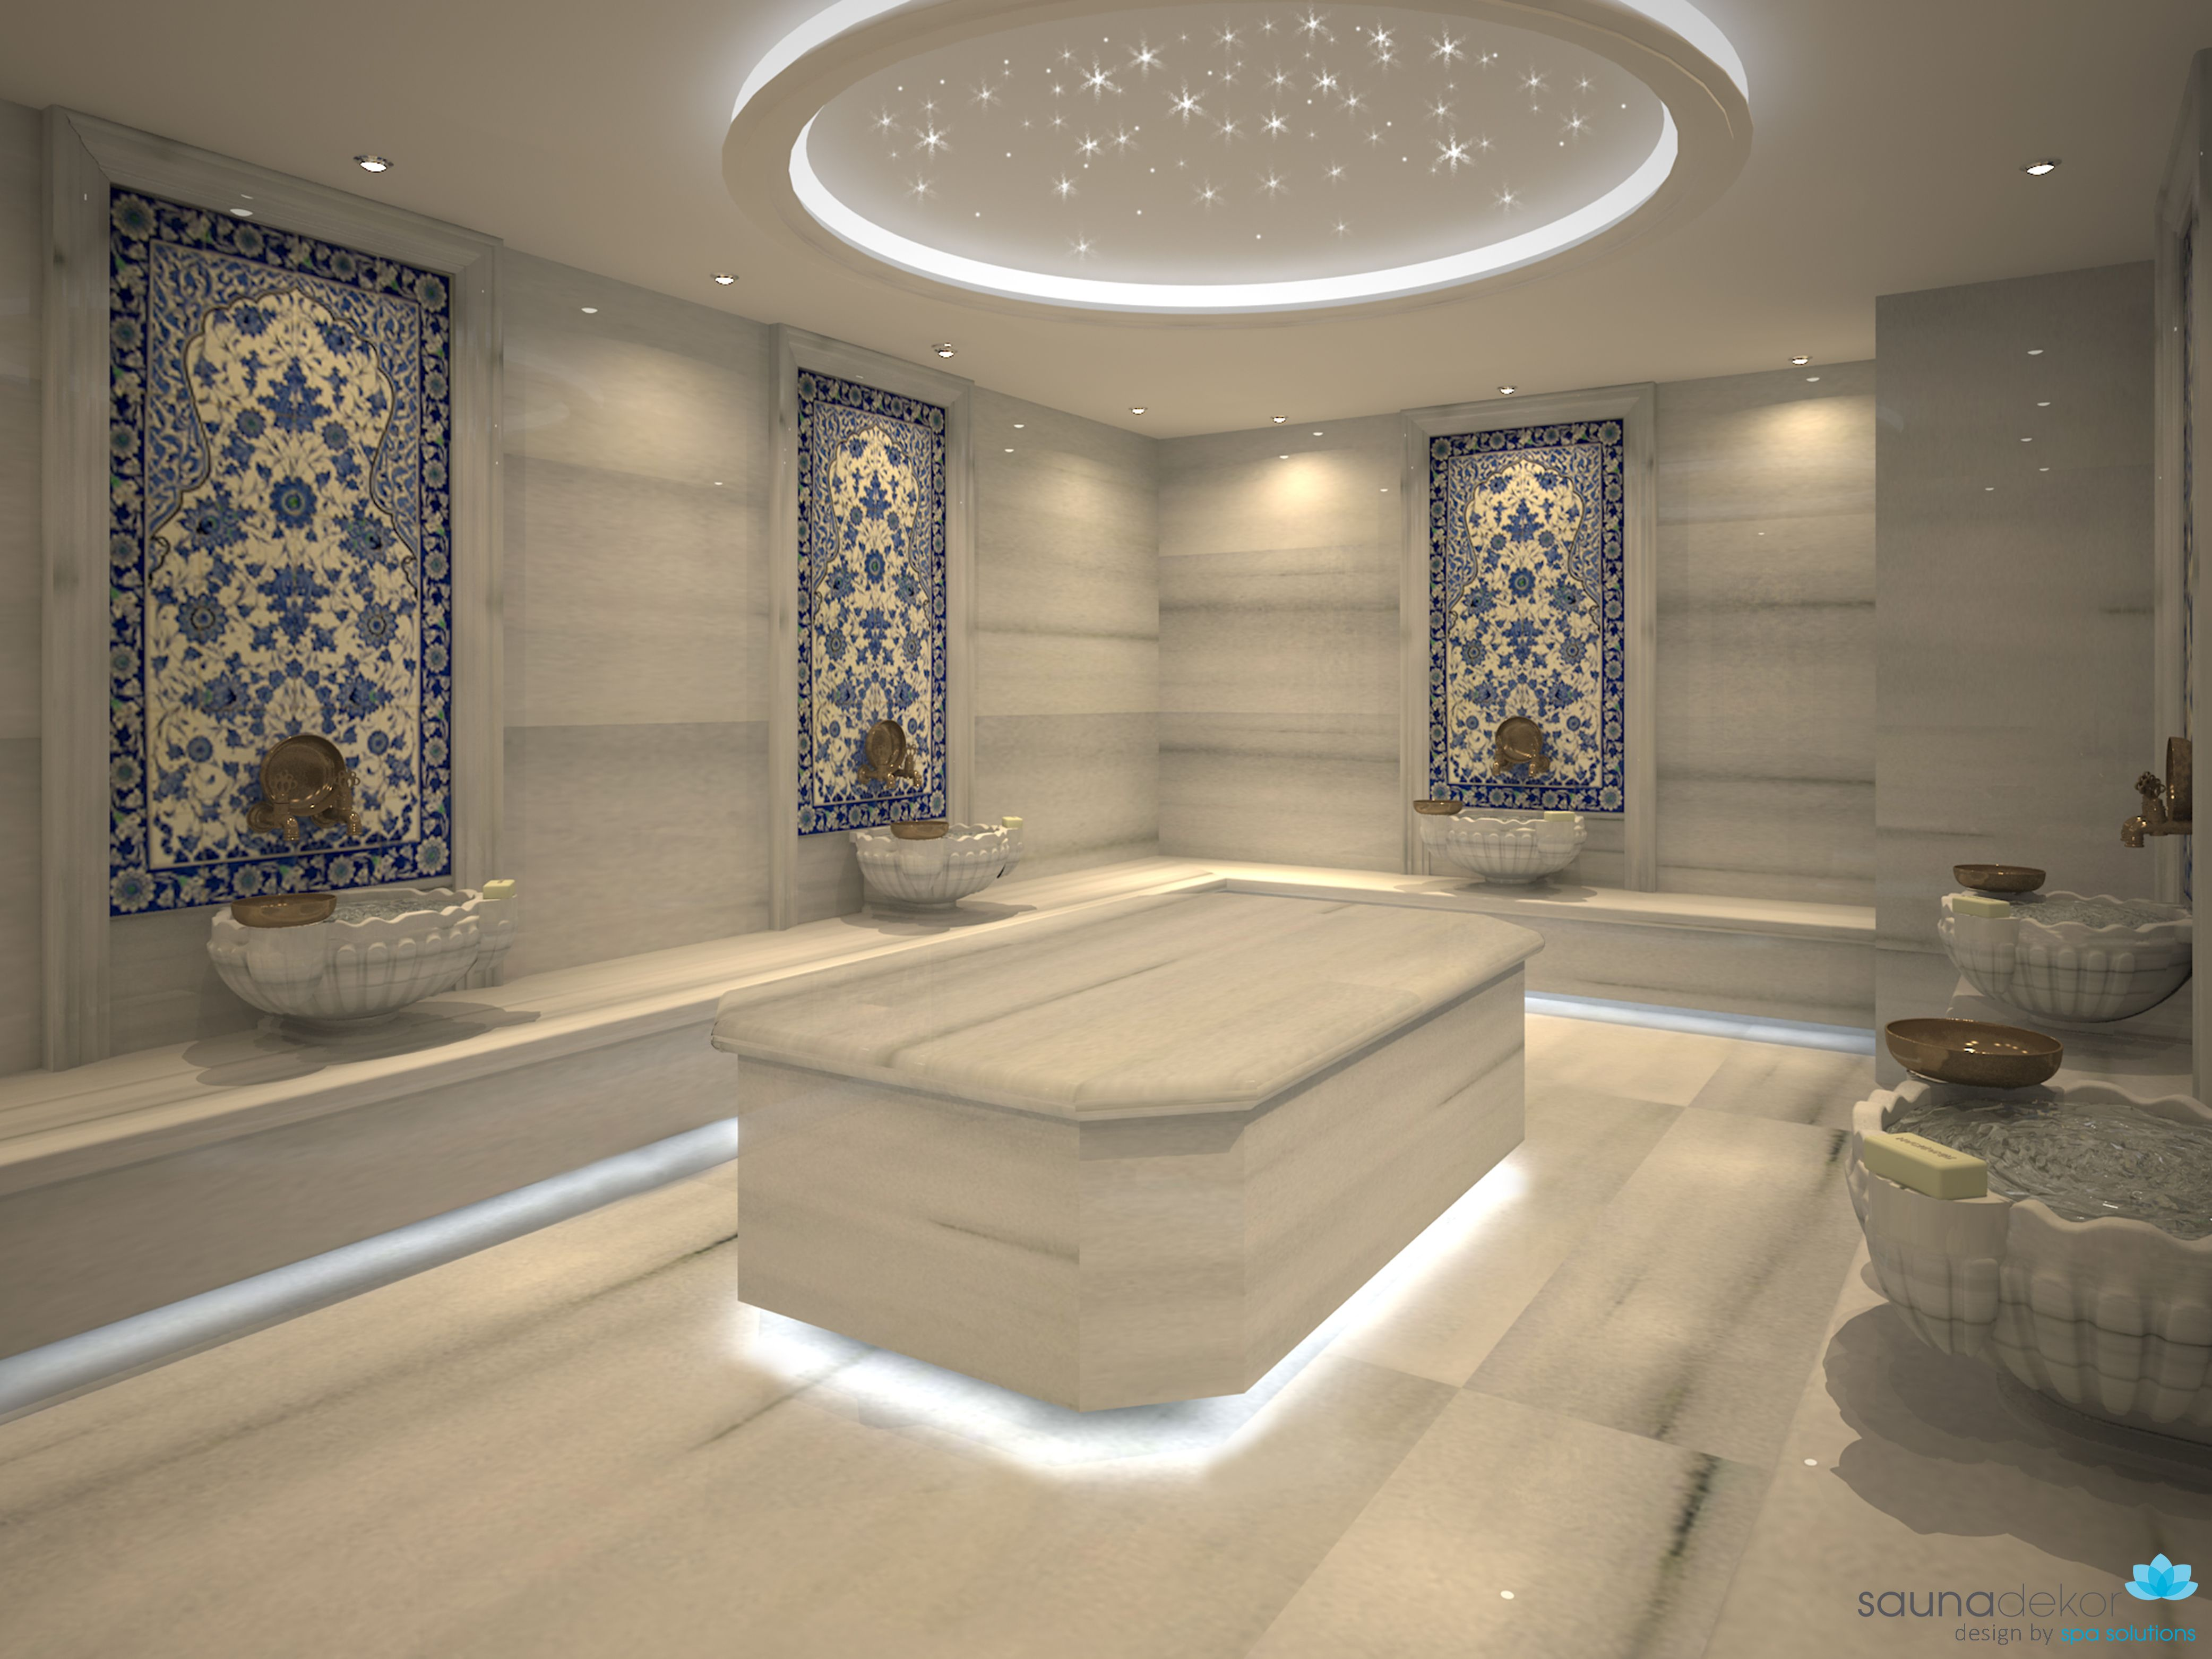 turkish bath render hamam render gumush plaza residence spa pinterest turkish bath bath. Black Bedroom Furniture Sets. Home Design Ideas